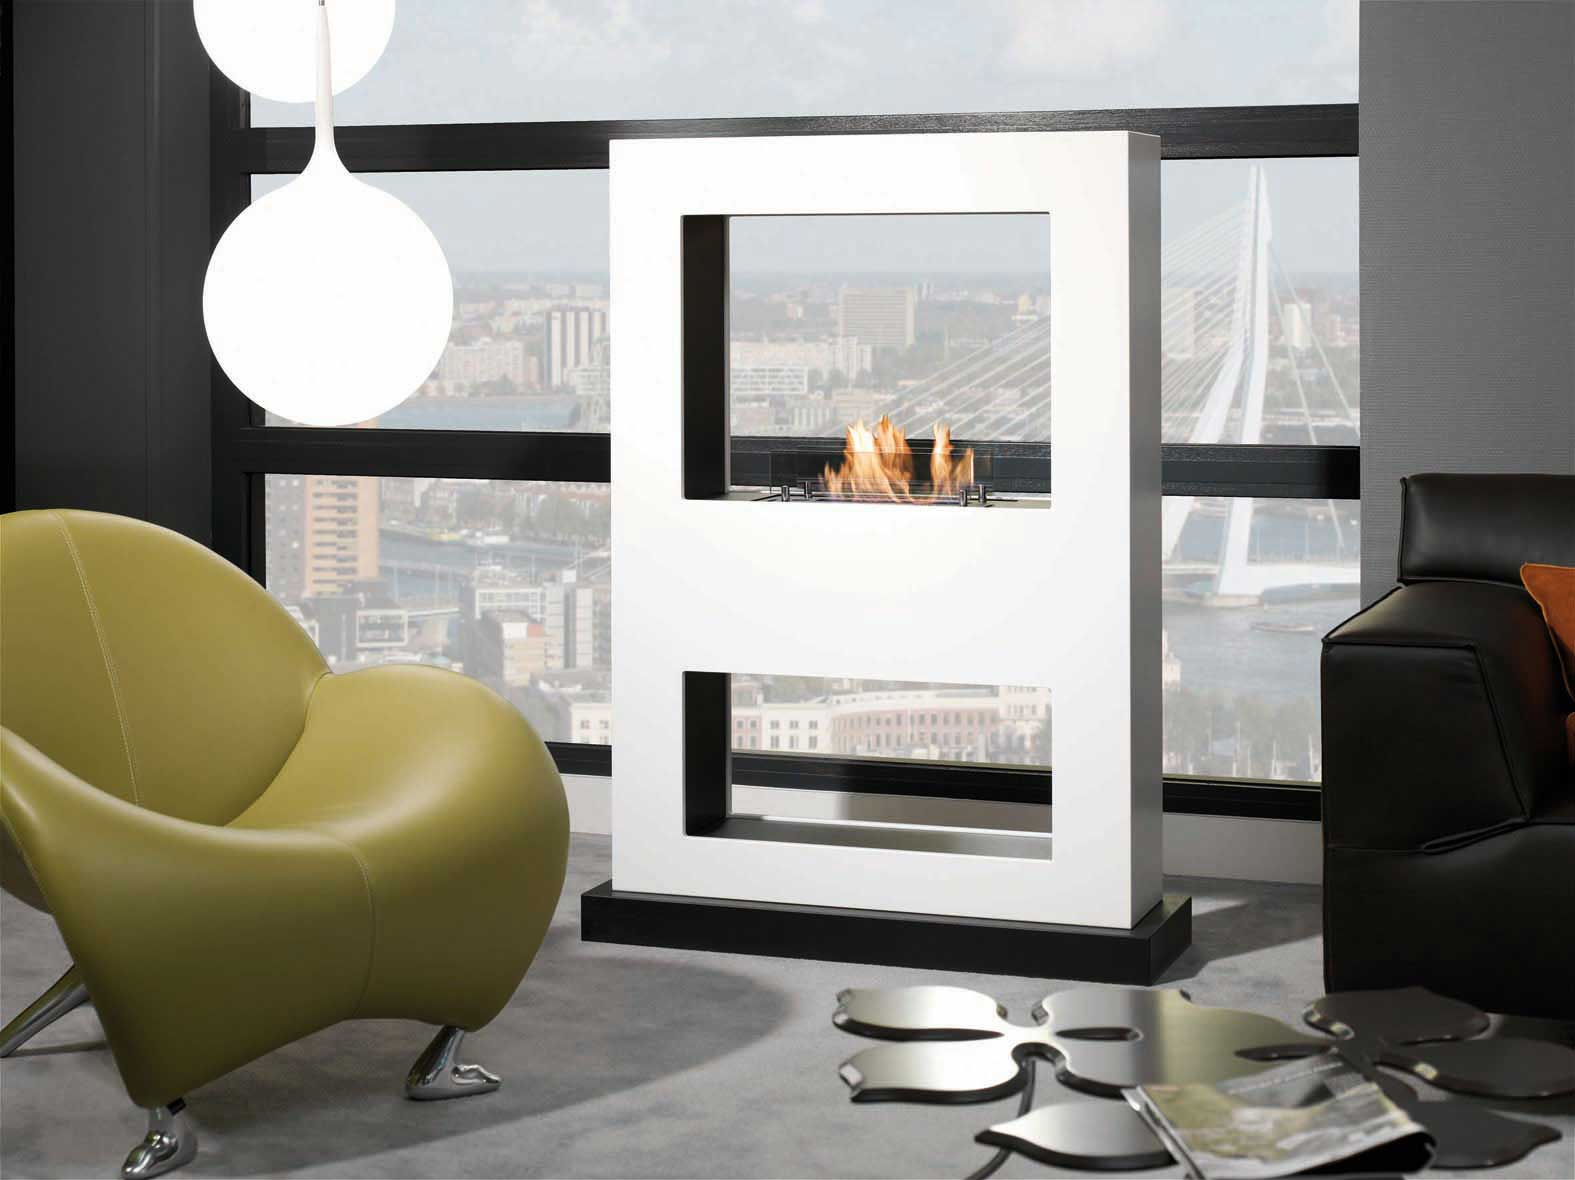 ruby fires bioethanol kamin lasize kaufen im borono online. Black Bedroom Furniture Sets. Home Design Ideas